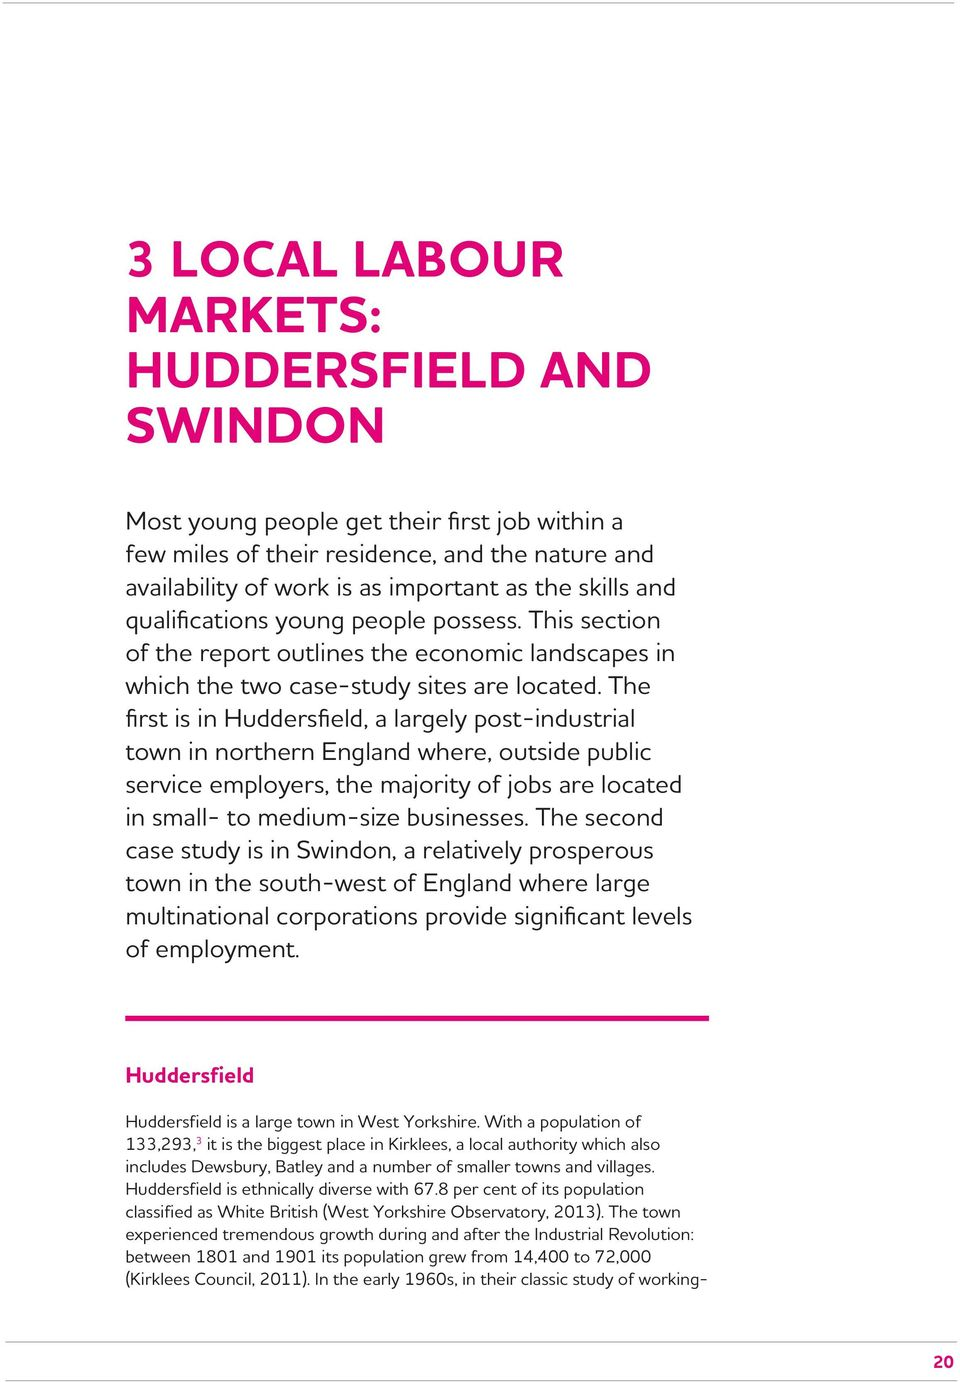 The first is in Huddersfield, a largely post-industrial town in northern England where, outside public service employers, the majority of jobs are located in small- to medium-size businesses.